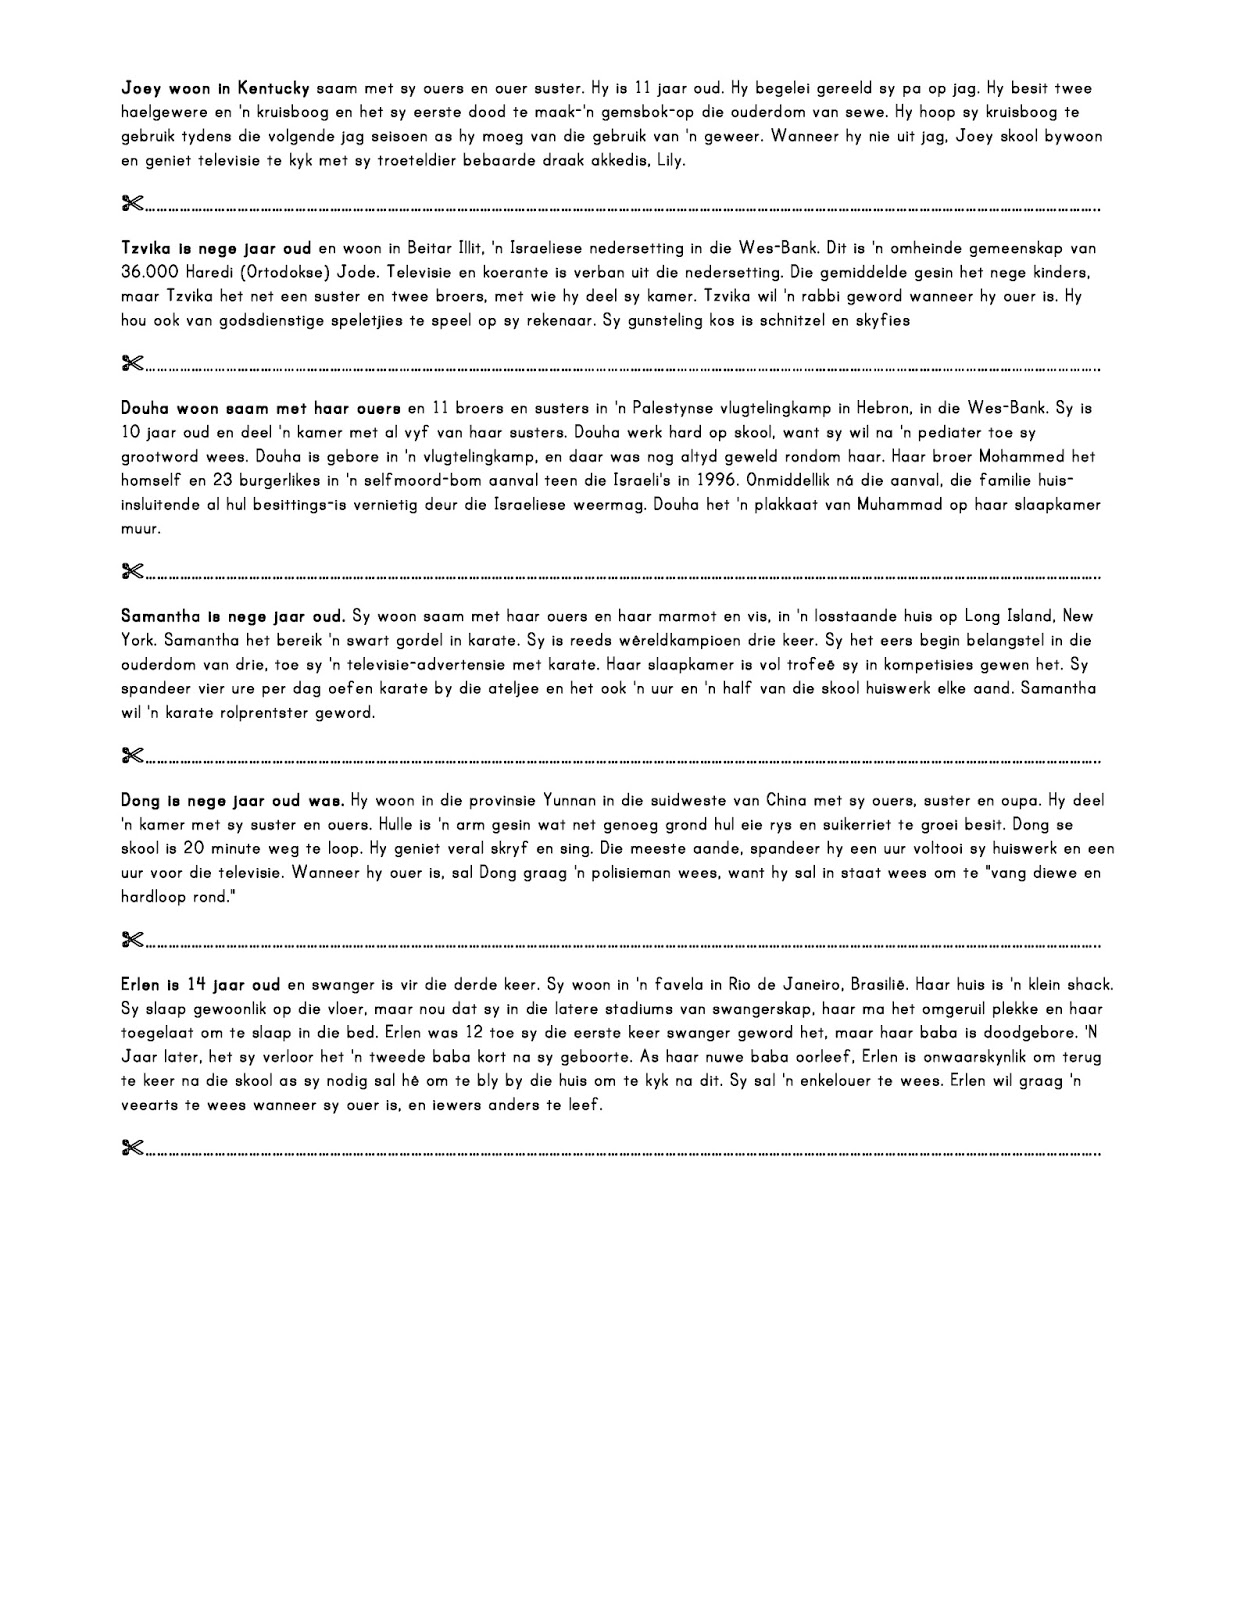 021 Foto20text Page Jpg Essay Example Free Essays For School Striking Students Scholarships High Writing Prompts Full